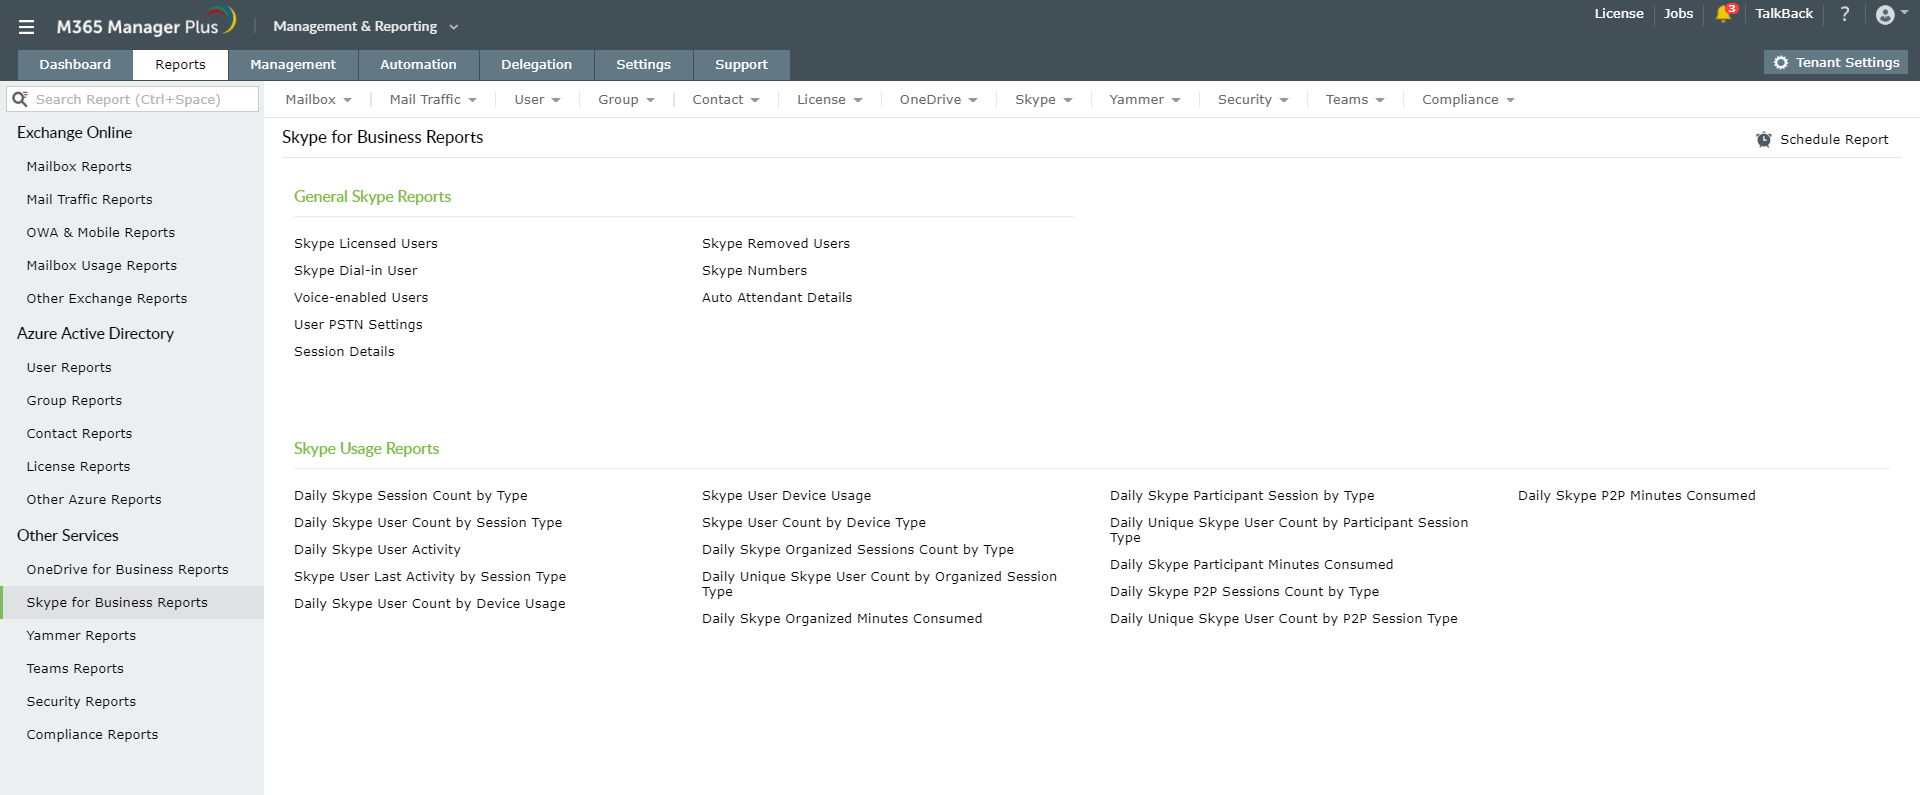 Skype For Business Reports